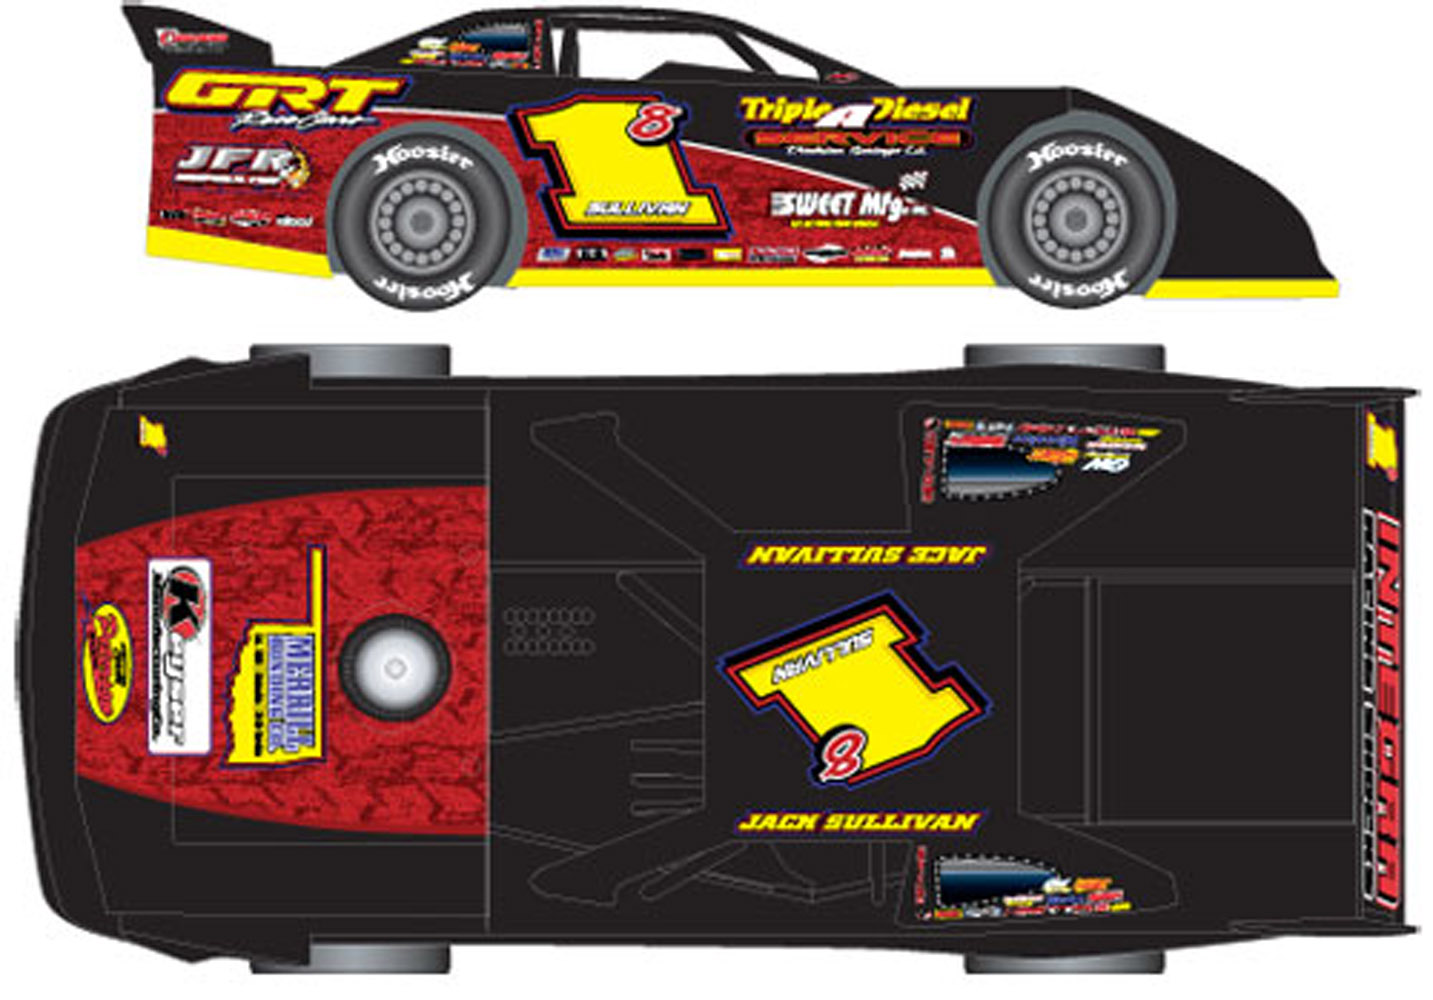 2012 JACK SULLIVAN  #18  1/24 ADC Dirt Late Model Diecast Car